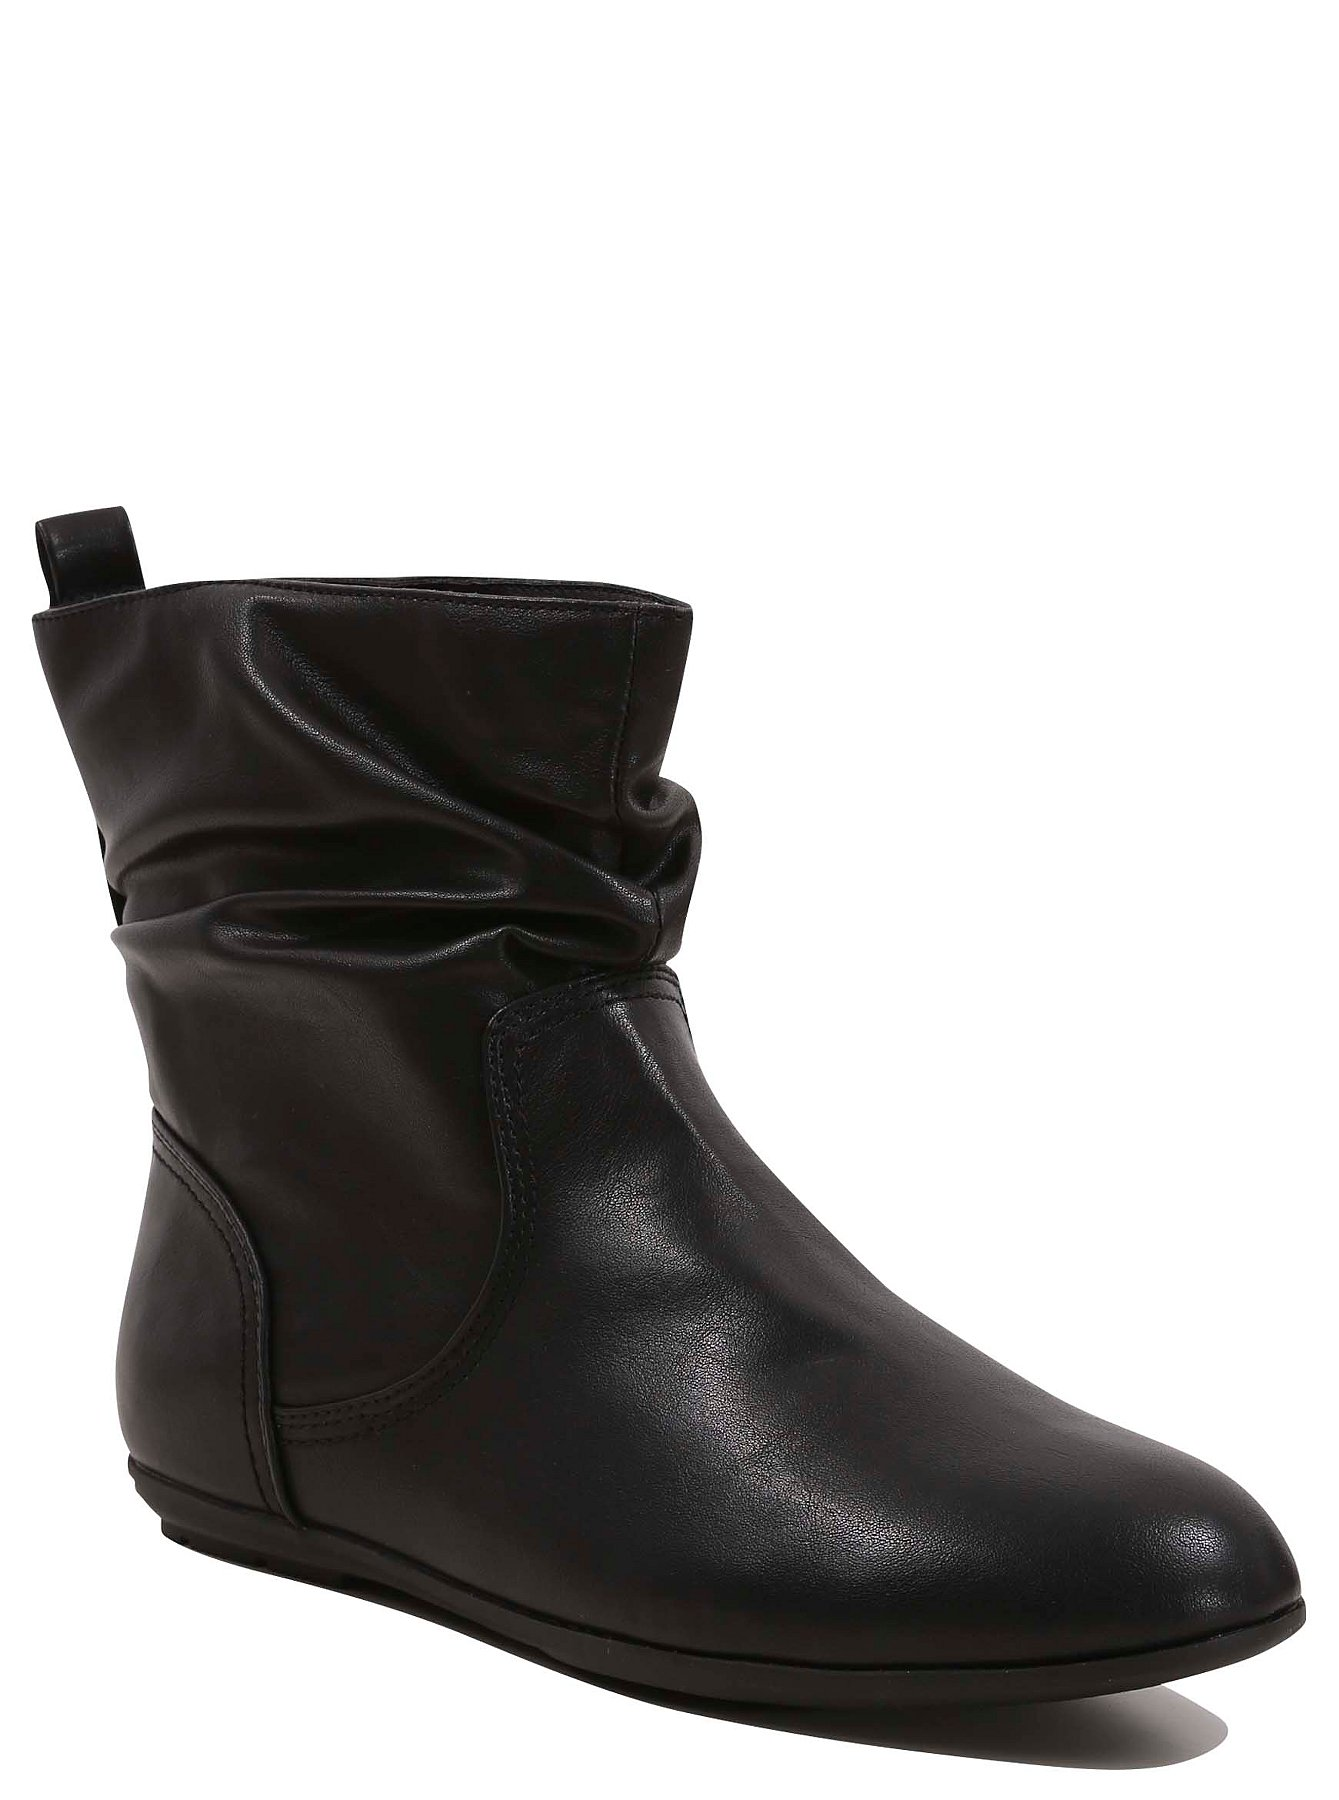 Ladies leather gloves asda - Faux Leather Ankle Boots